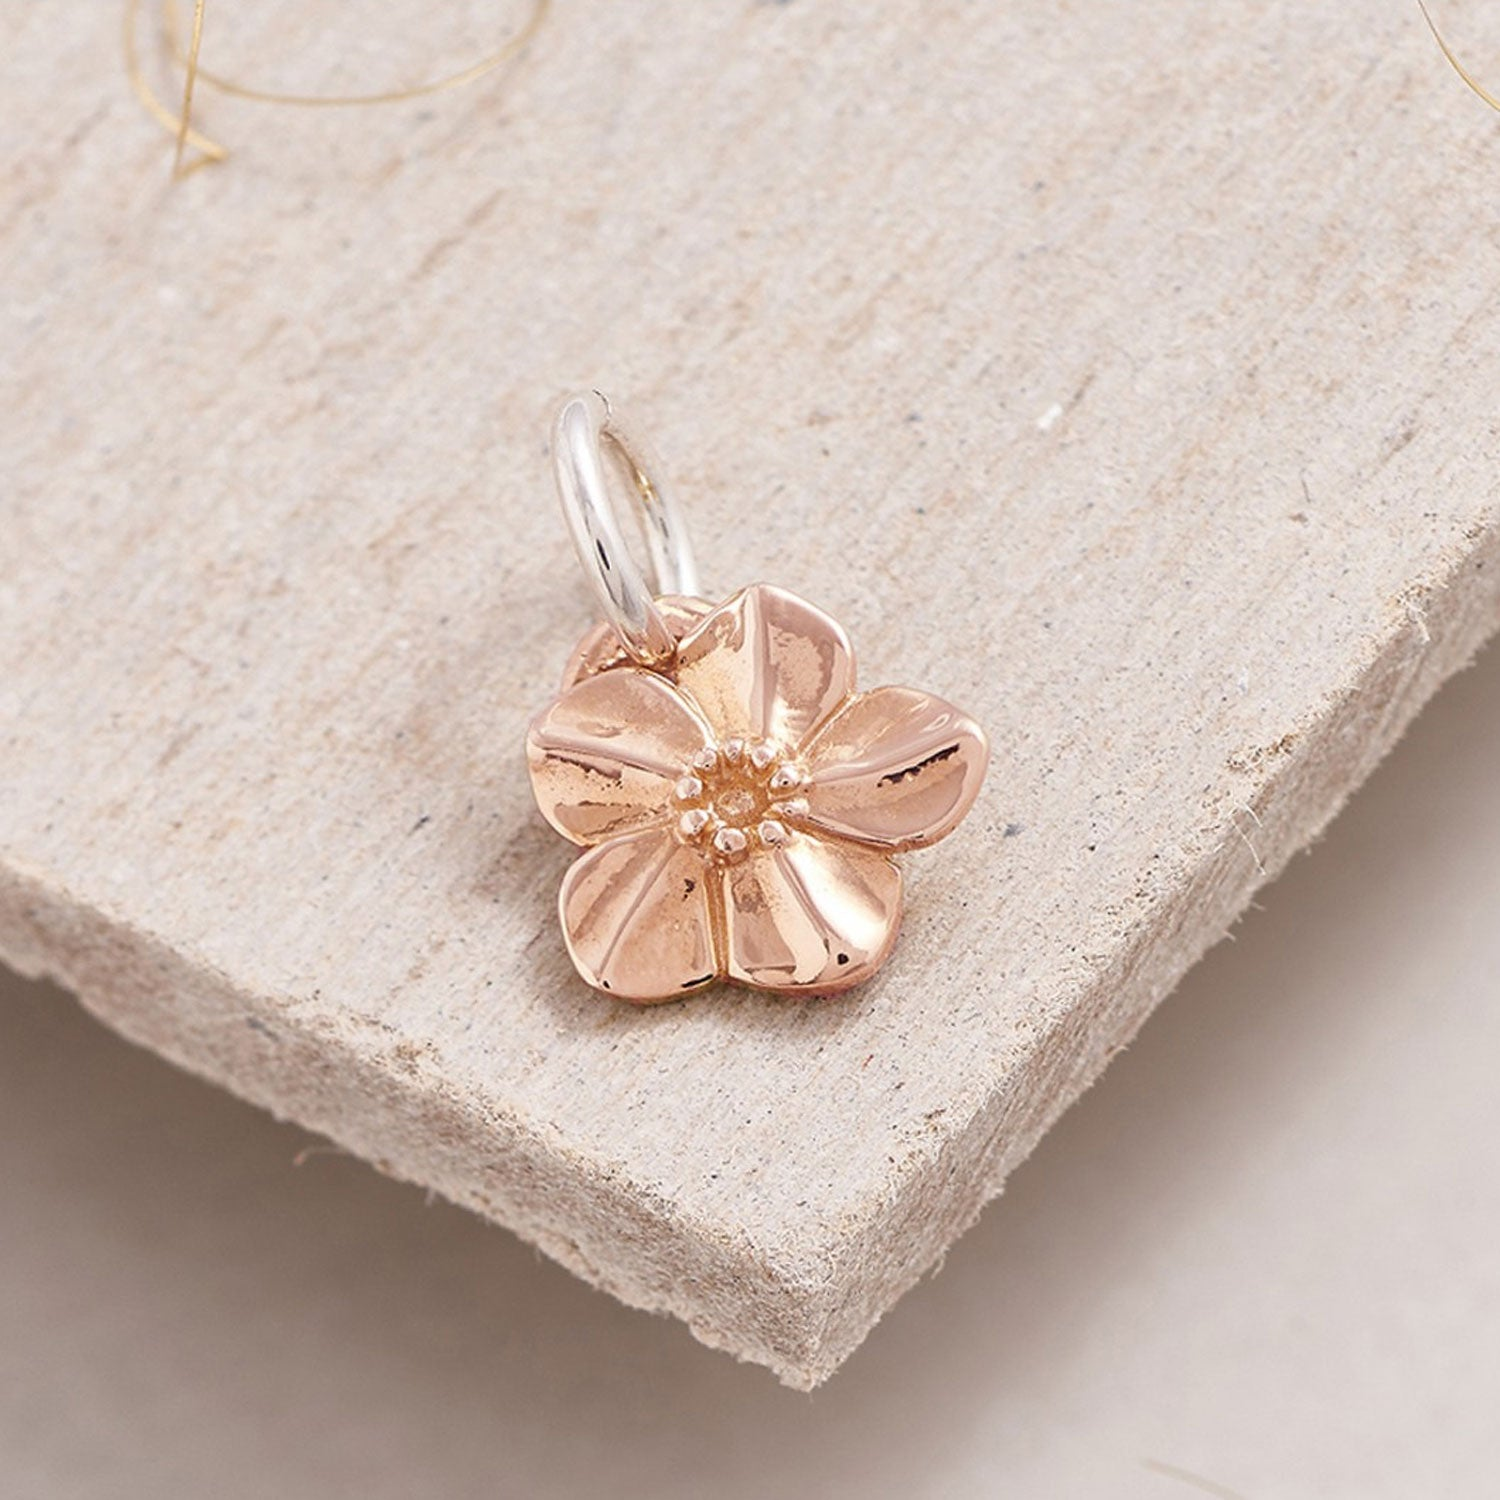 solid rose gold forget me not flower charm Scarlett Jewellery